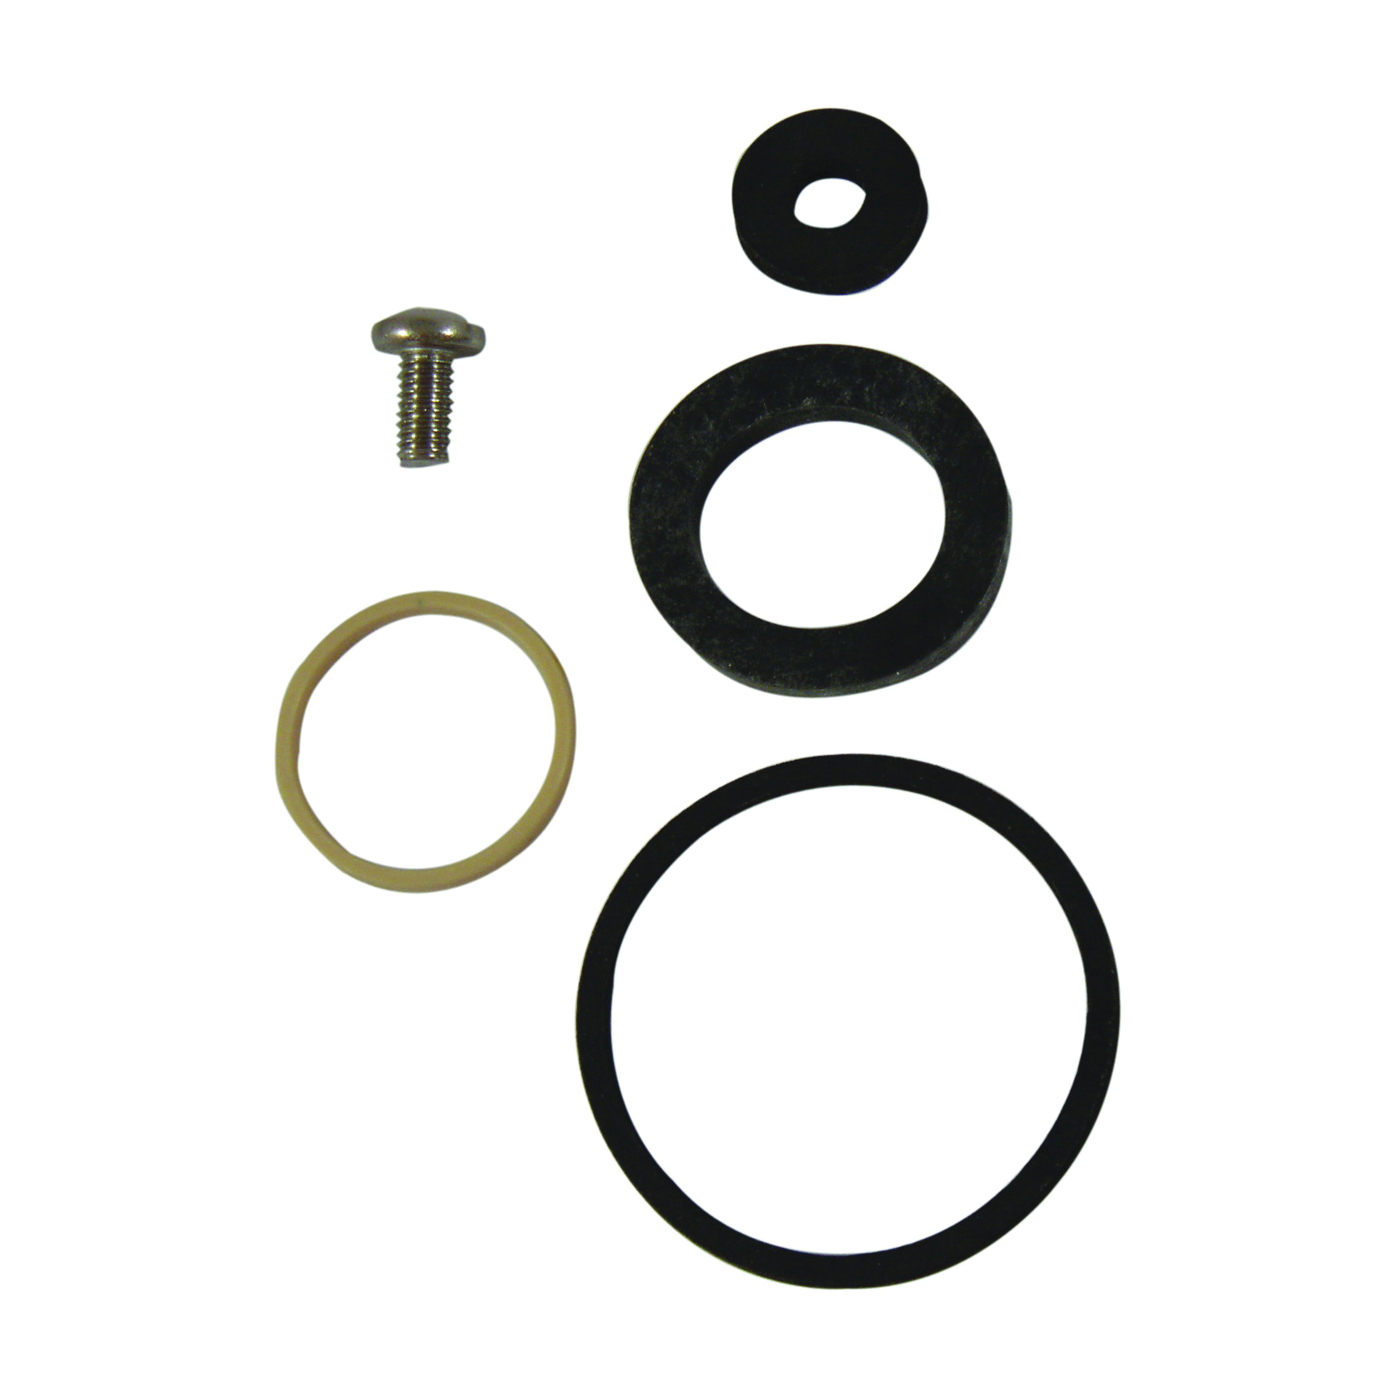 Picture of Danco 38748 Cartridge Repair Kit, Plastic/Rubber/Stainless Steel, For: Symmons TA-9 Faucets